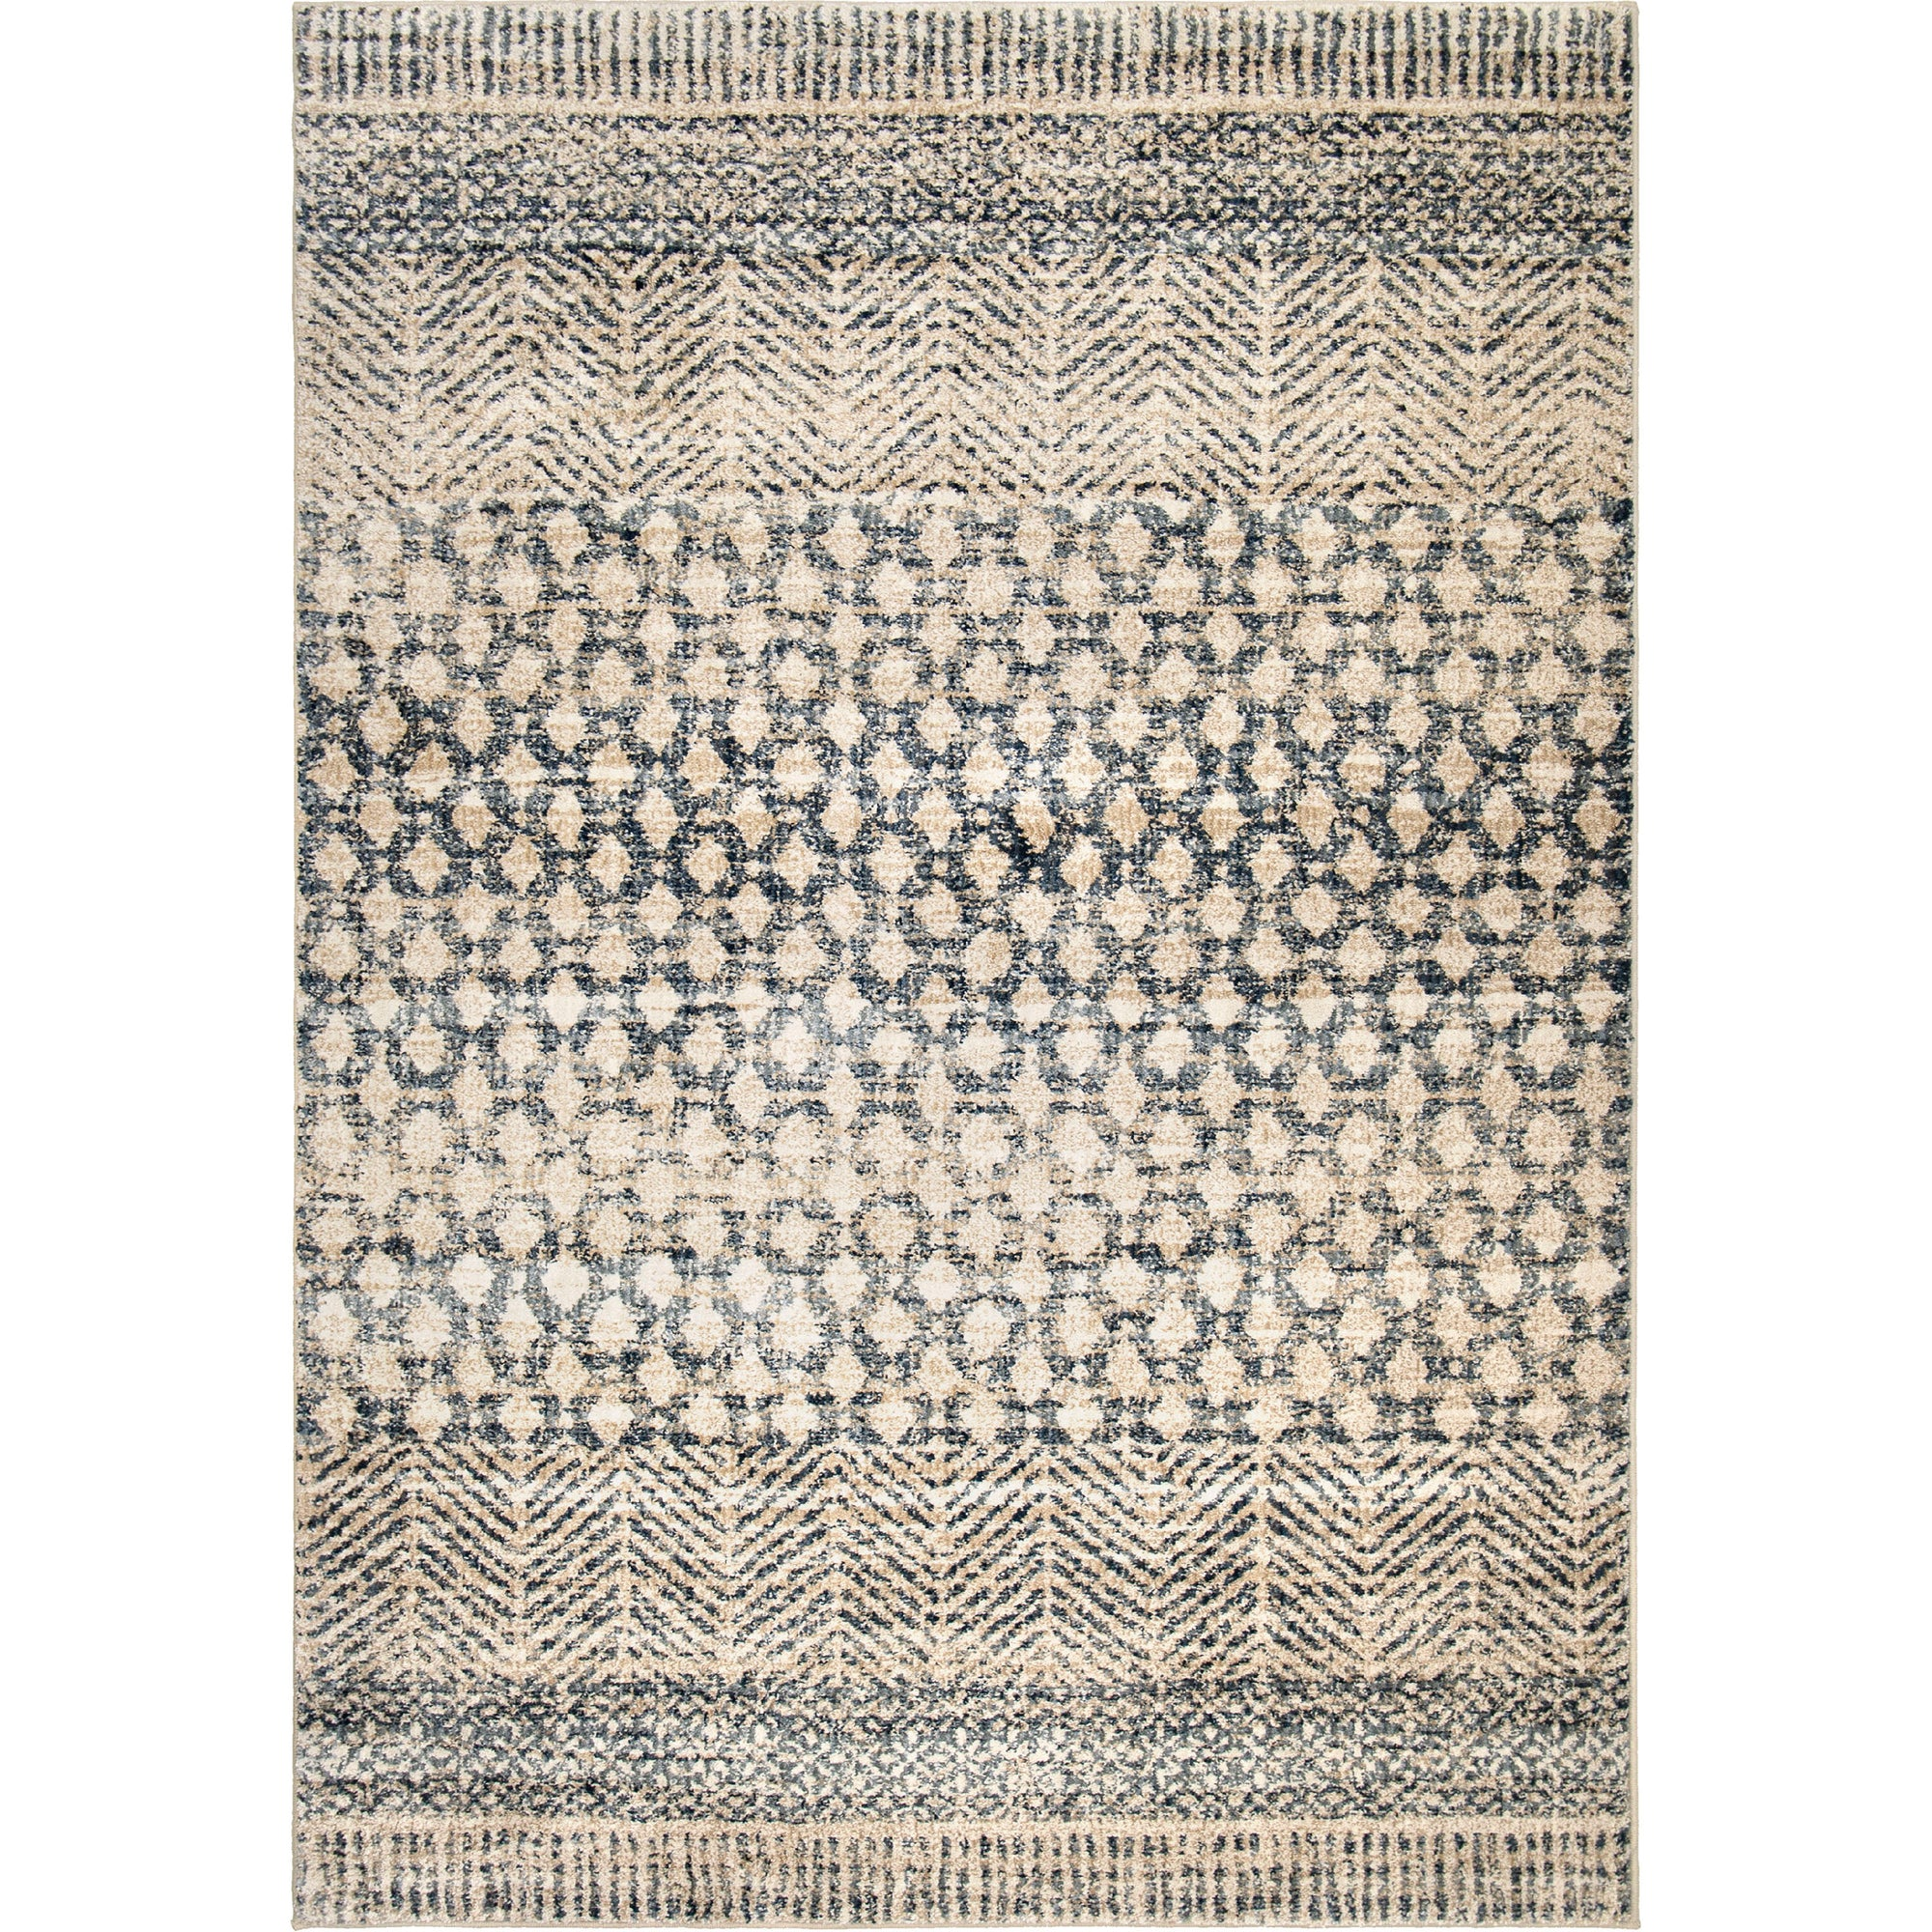 "Palmetto Living Adagio Arrowhead Light Blue Area Rug - 2'2"" x 8'"